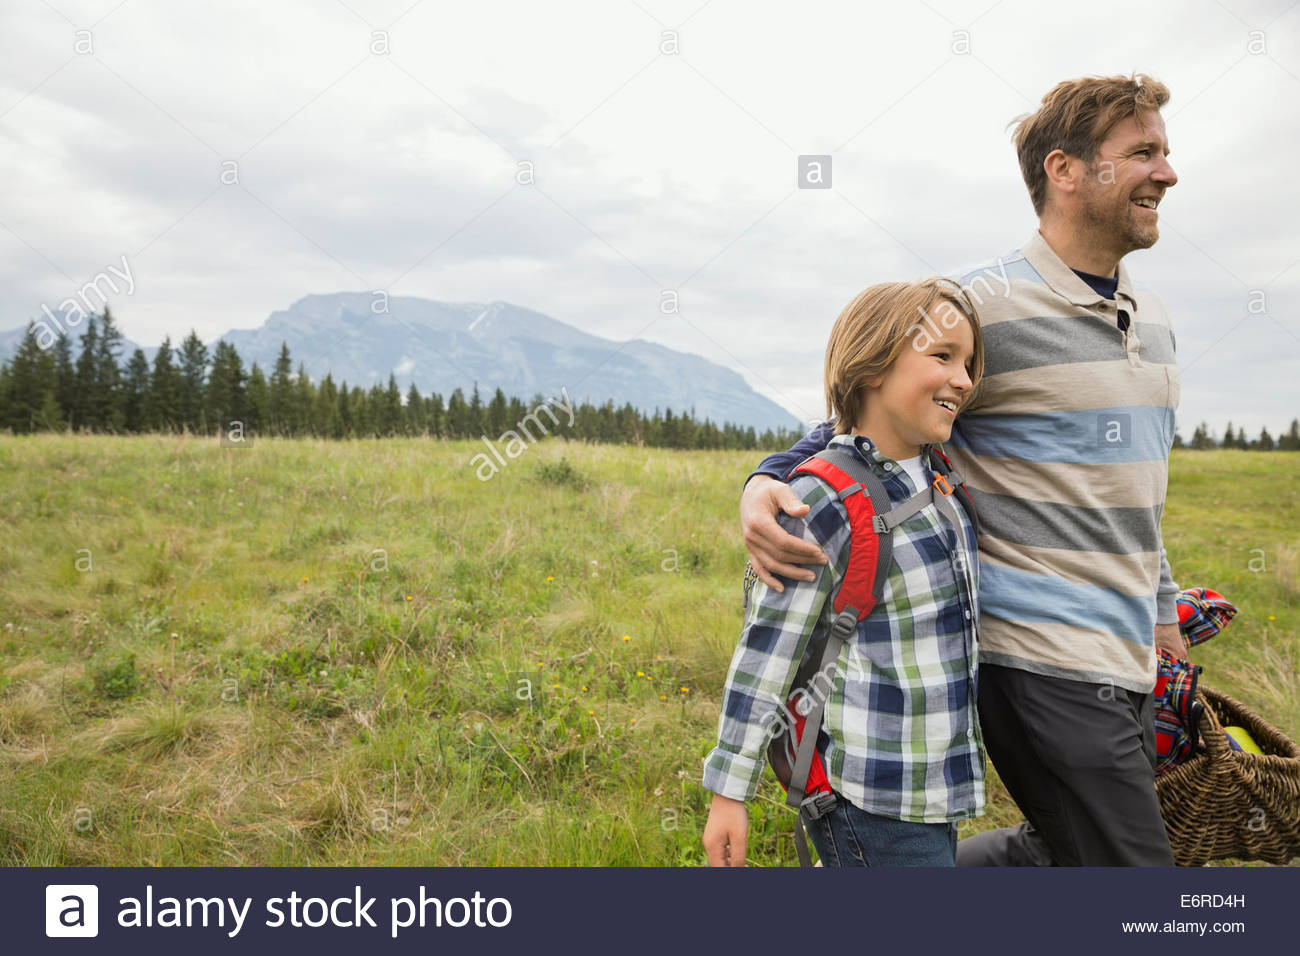 Father and son having picnic in rural field - Stock Image